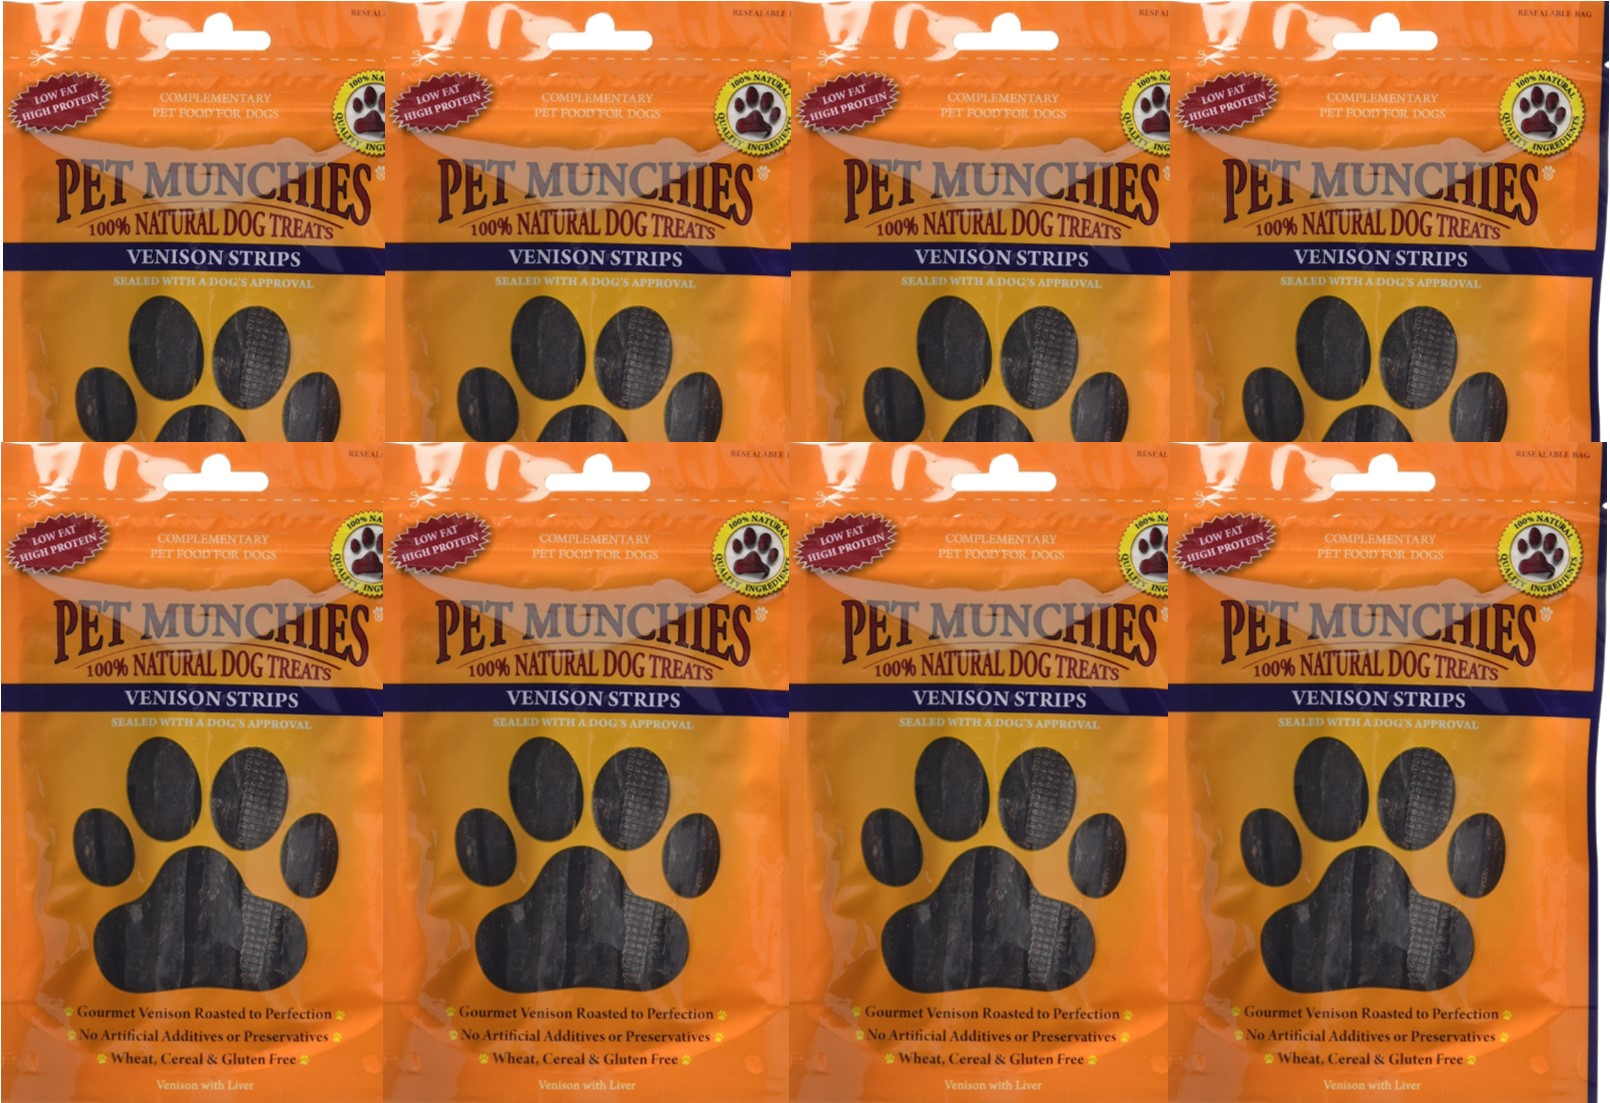 Pet Munchies Venison Strips 1 box of 8